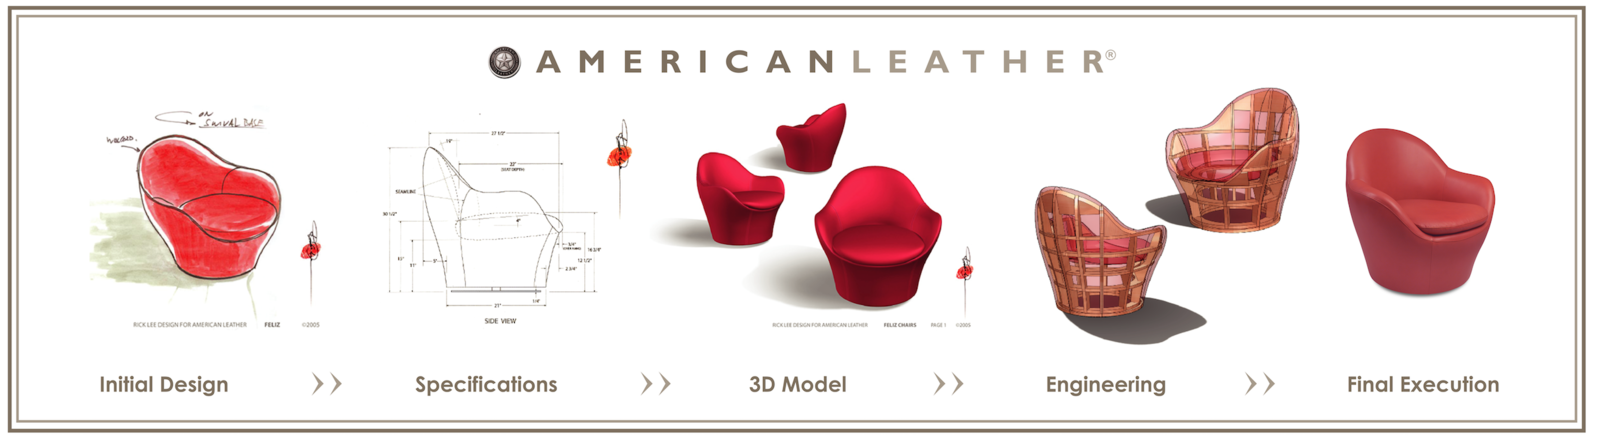 In addition to communicating with retailers and gathering input from across the company, American Leather's proprietary 10-day product development process relies on both in-house and outside designers for new ideas and iterations.